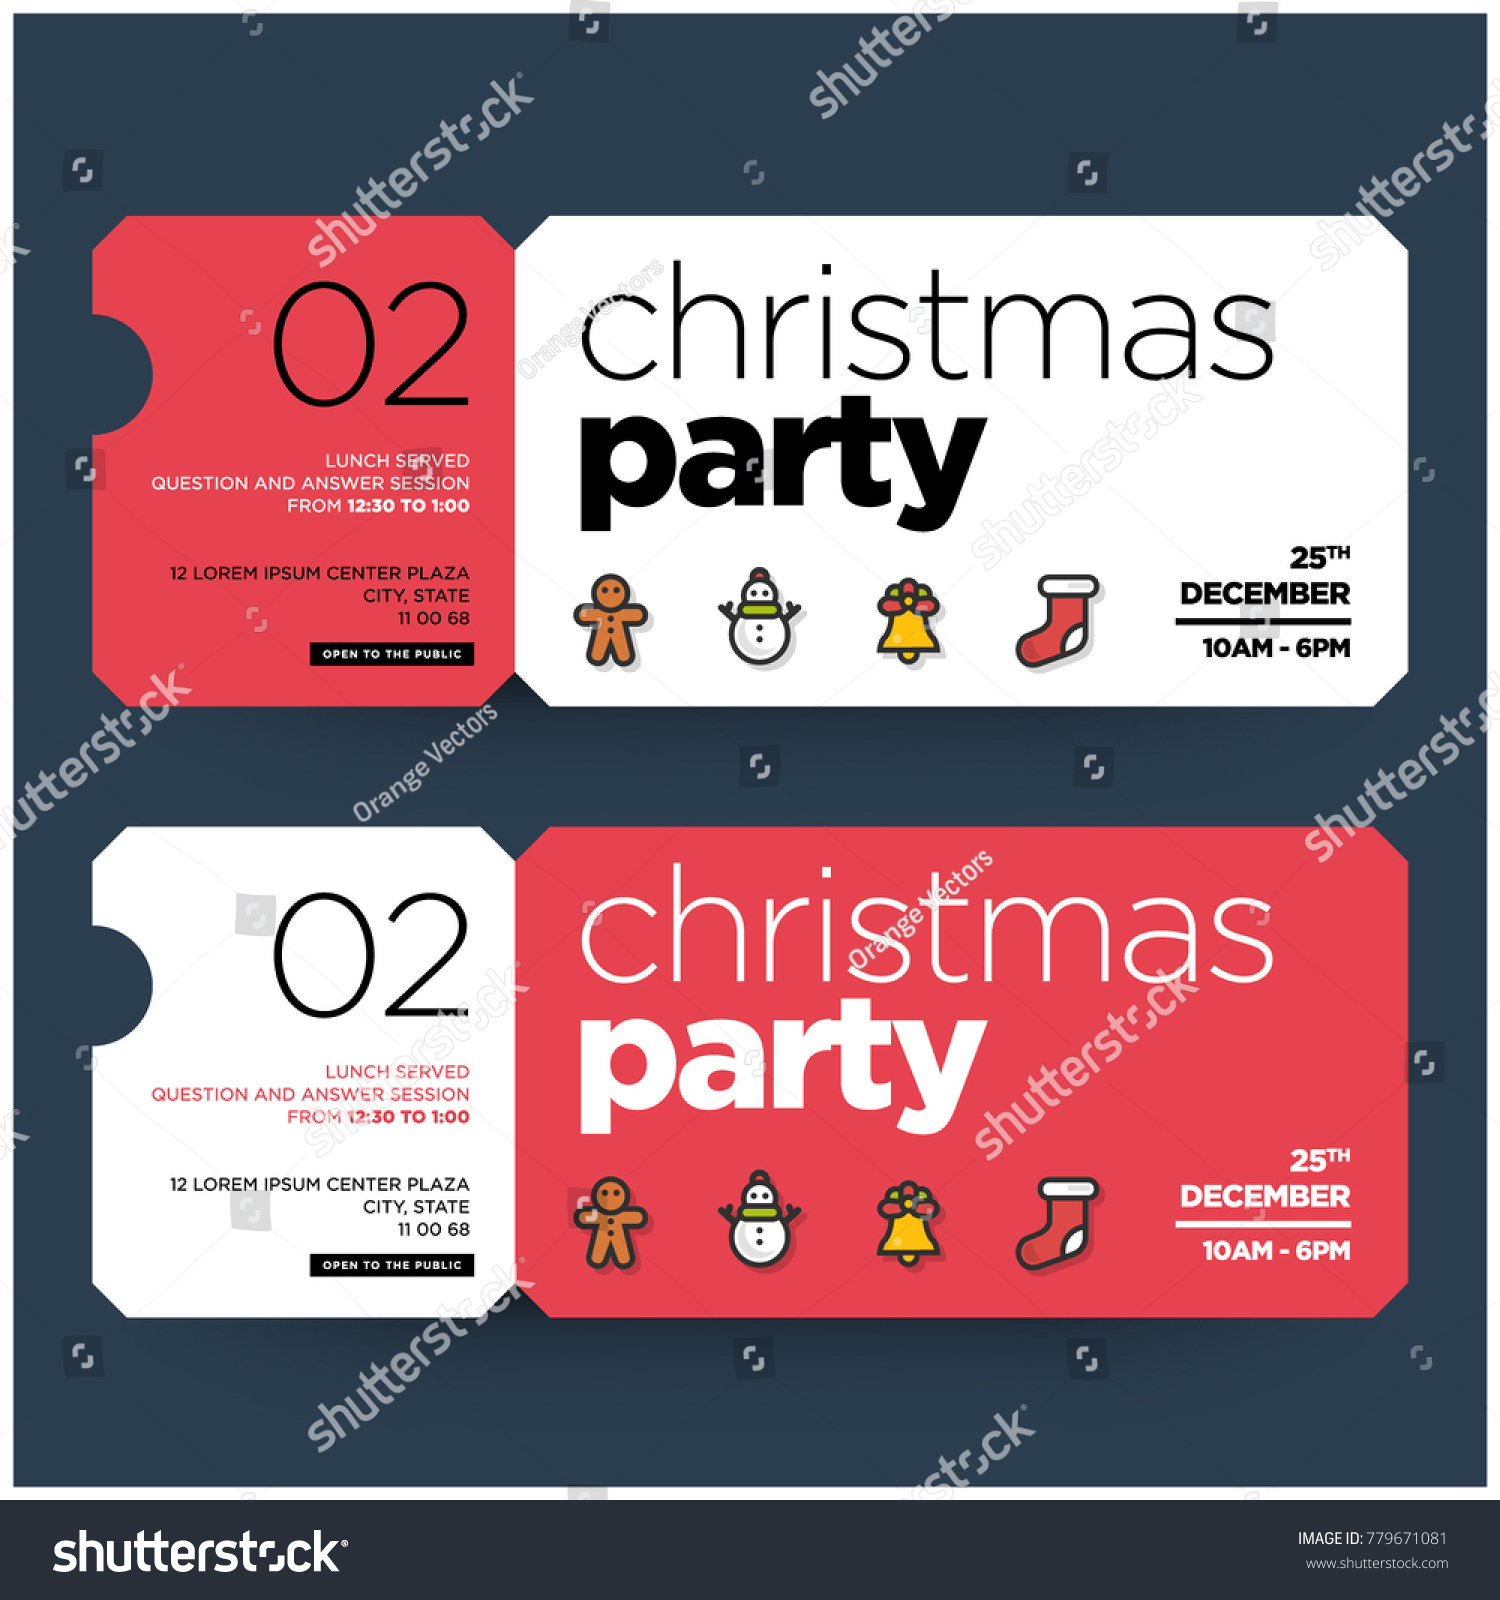 Christmas Party Invitation Design Ticket Style Stock Vector ...